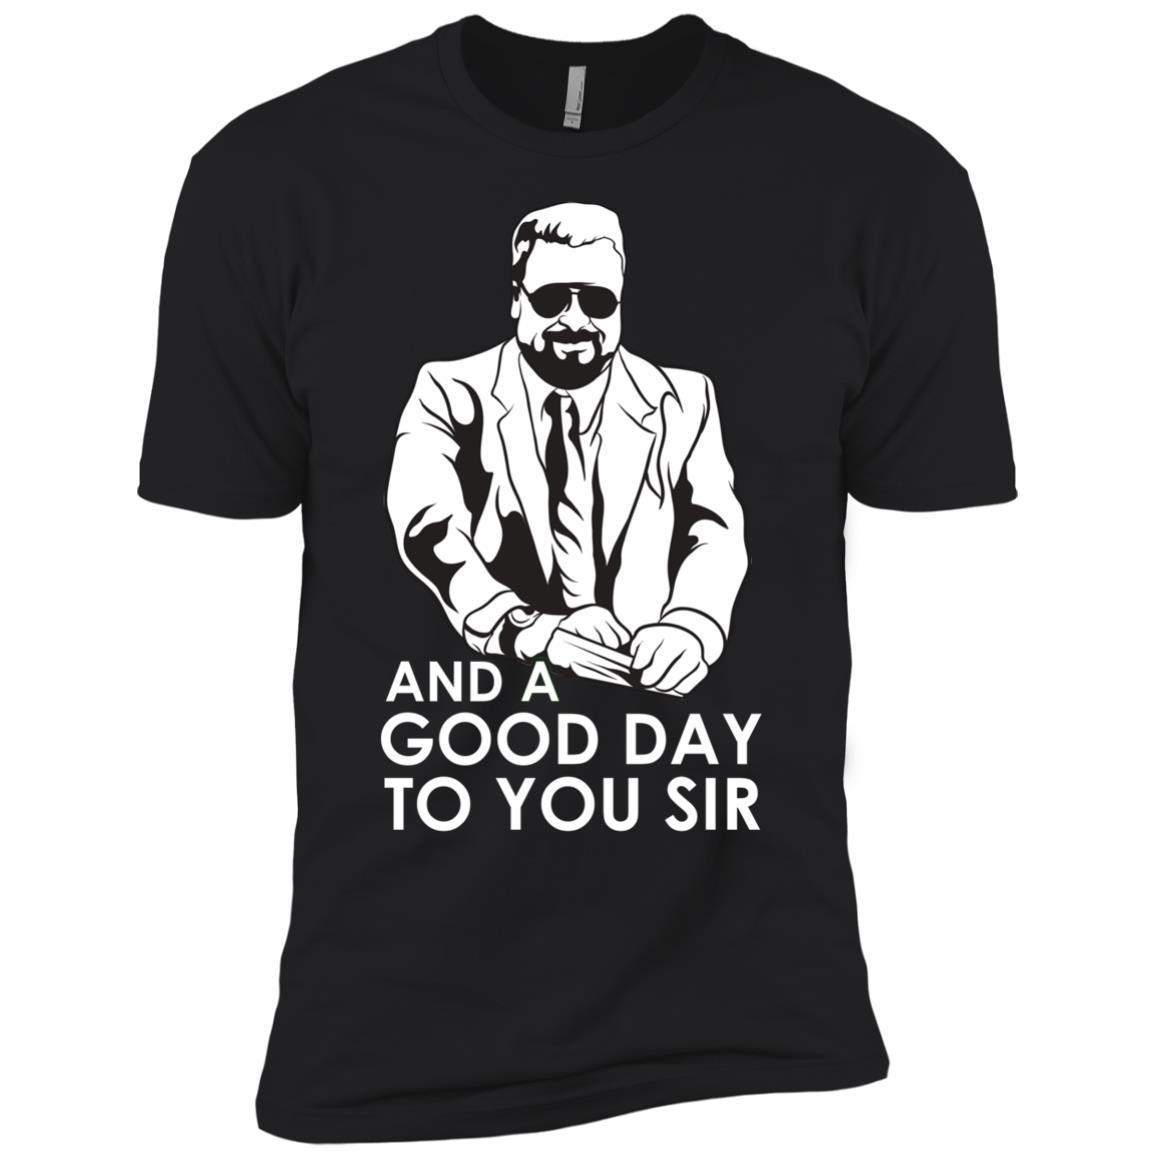 T-Shirts - Good Day Premium Tee